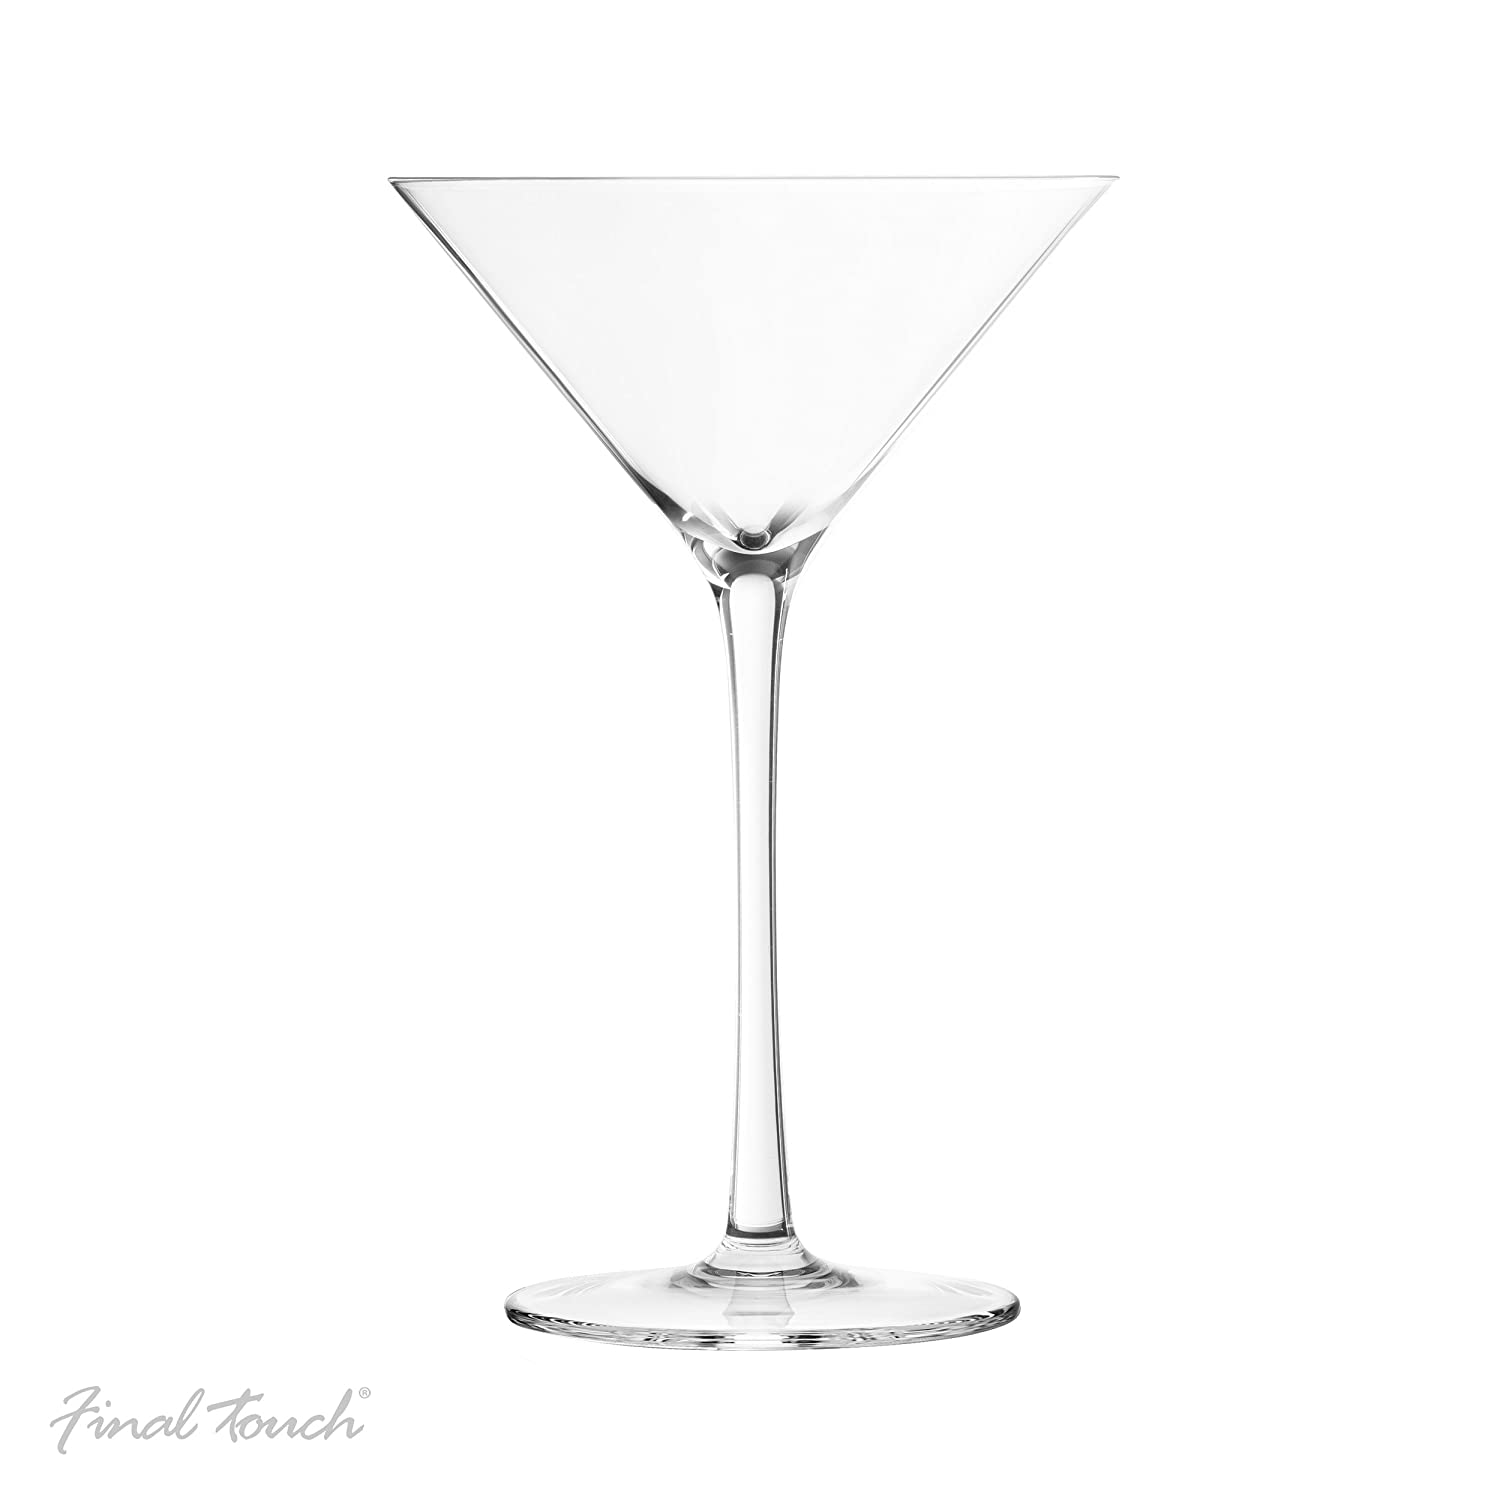 Final Touch Lead-Free Crystal Glasses - Hand Crafted for Martini, Set of 2 Product Specialties Inc.